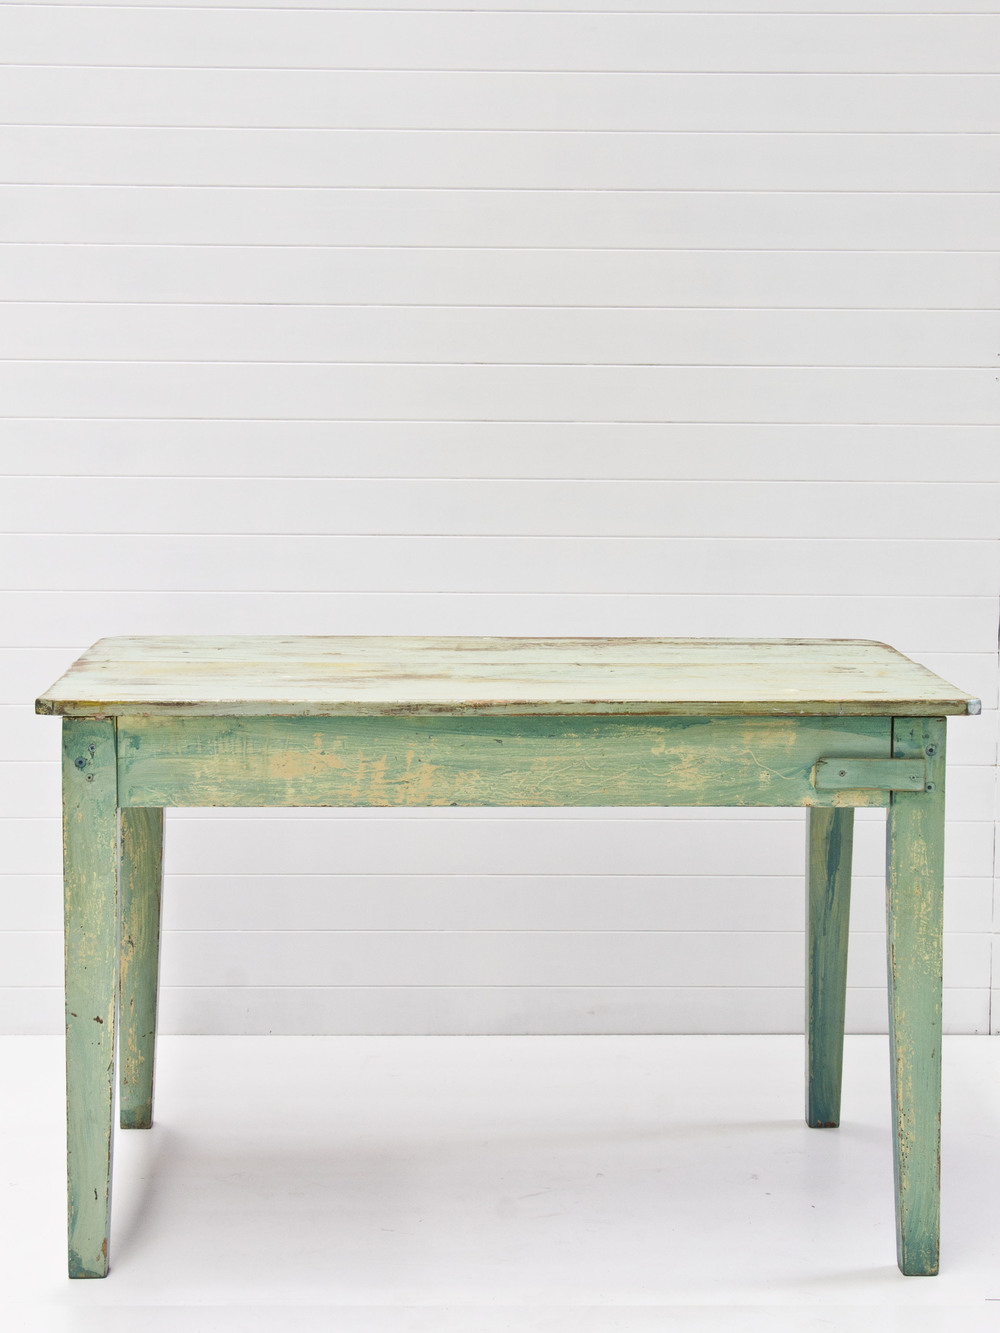 Cordel vintage table.jpg